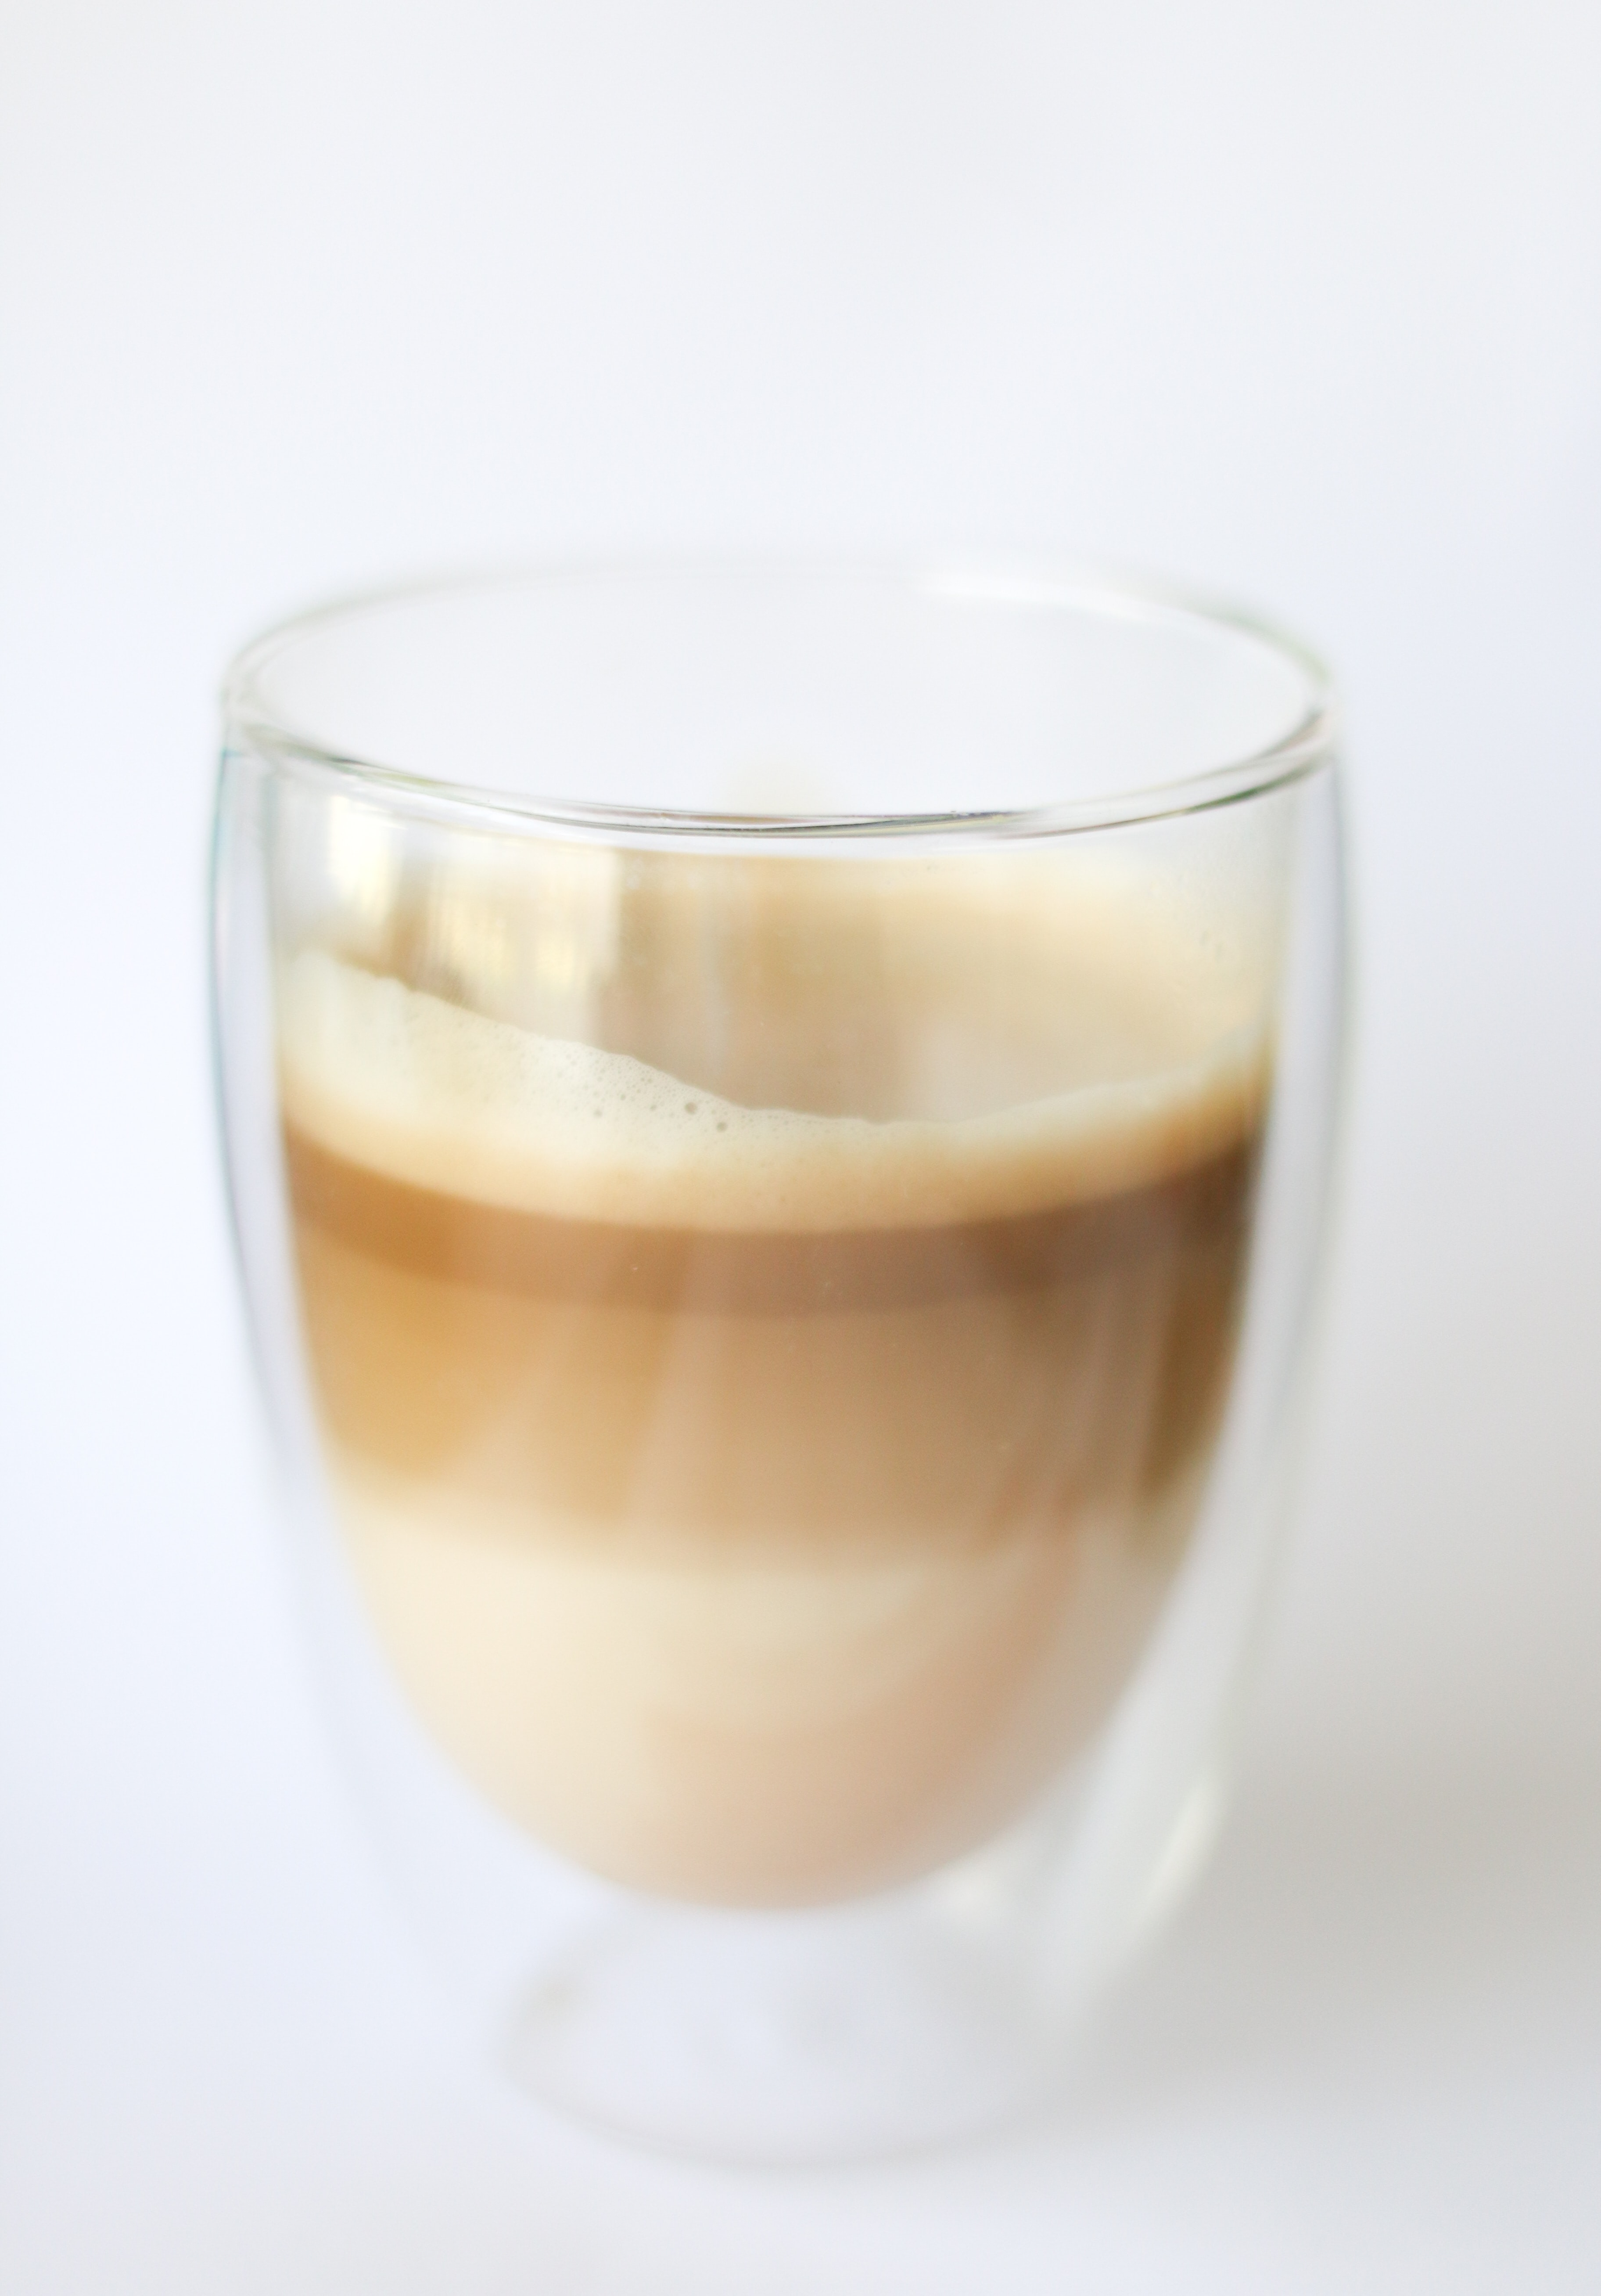 brown beverage in glass cup